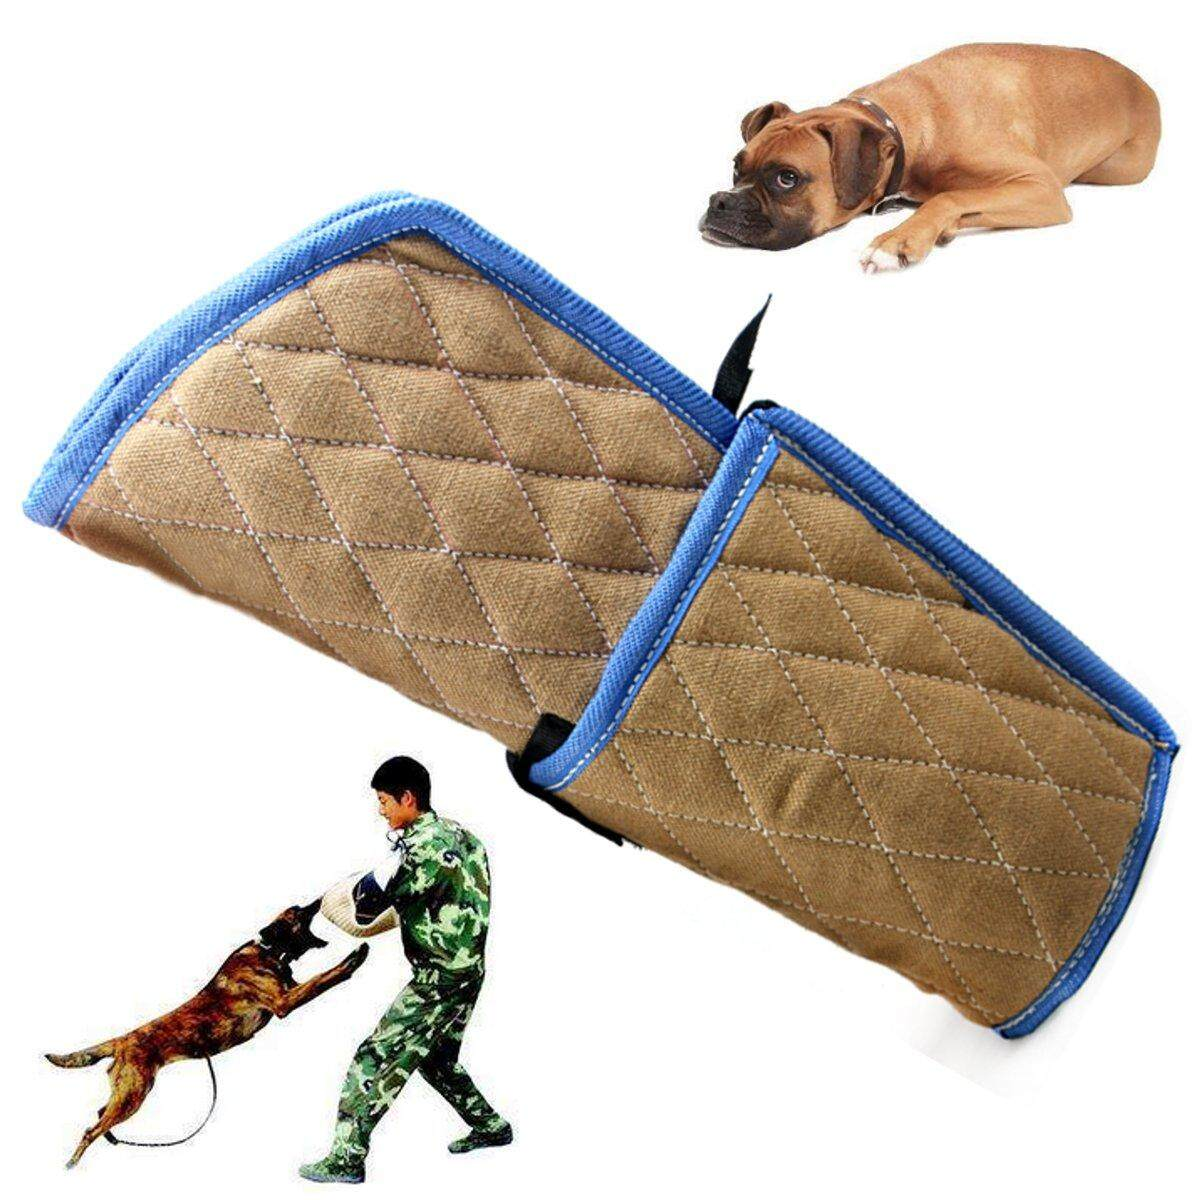 Dog Training Bite Arm Sleeve Protection Intermediate Working Police Young Dogs By Moonbeam.